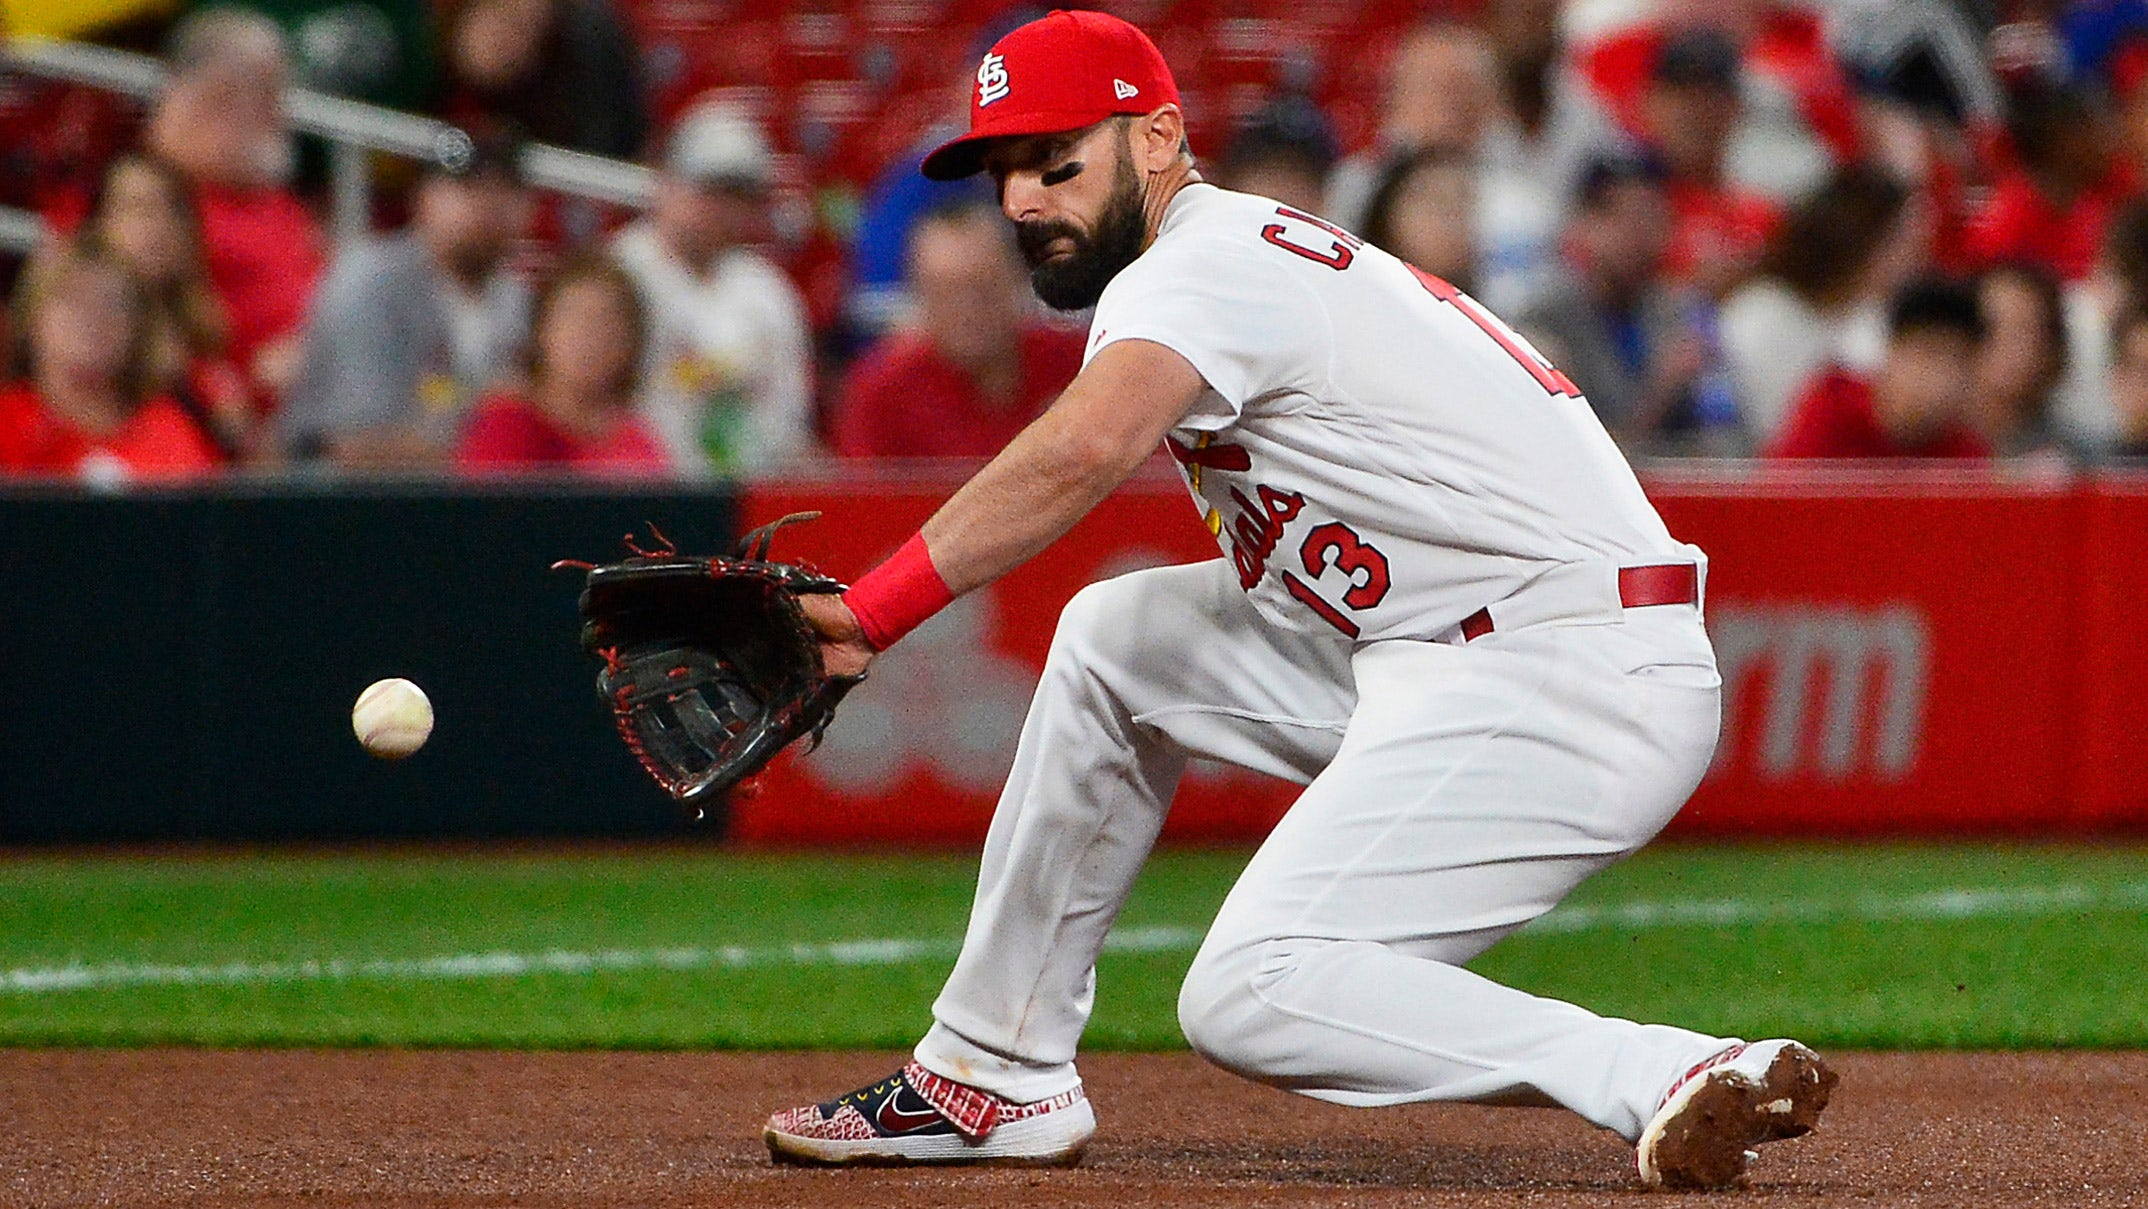 Cardinals sign Carpenter to two-year contract extension